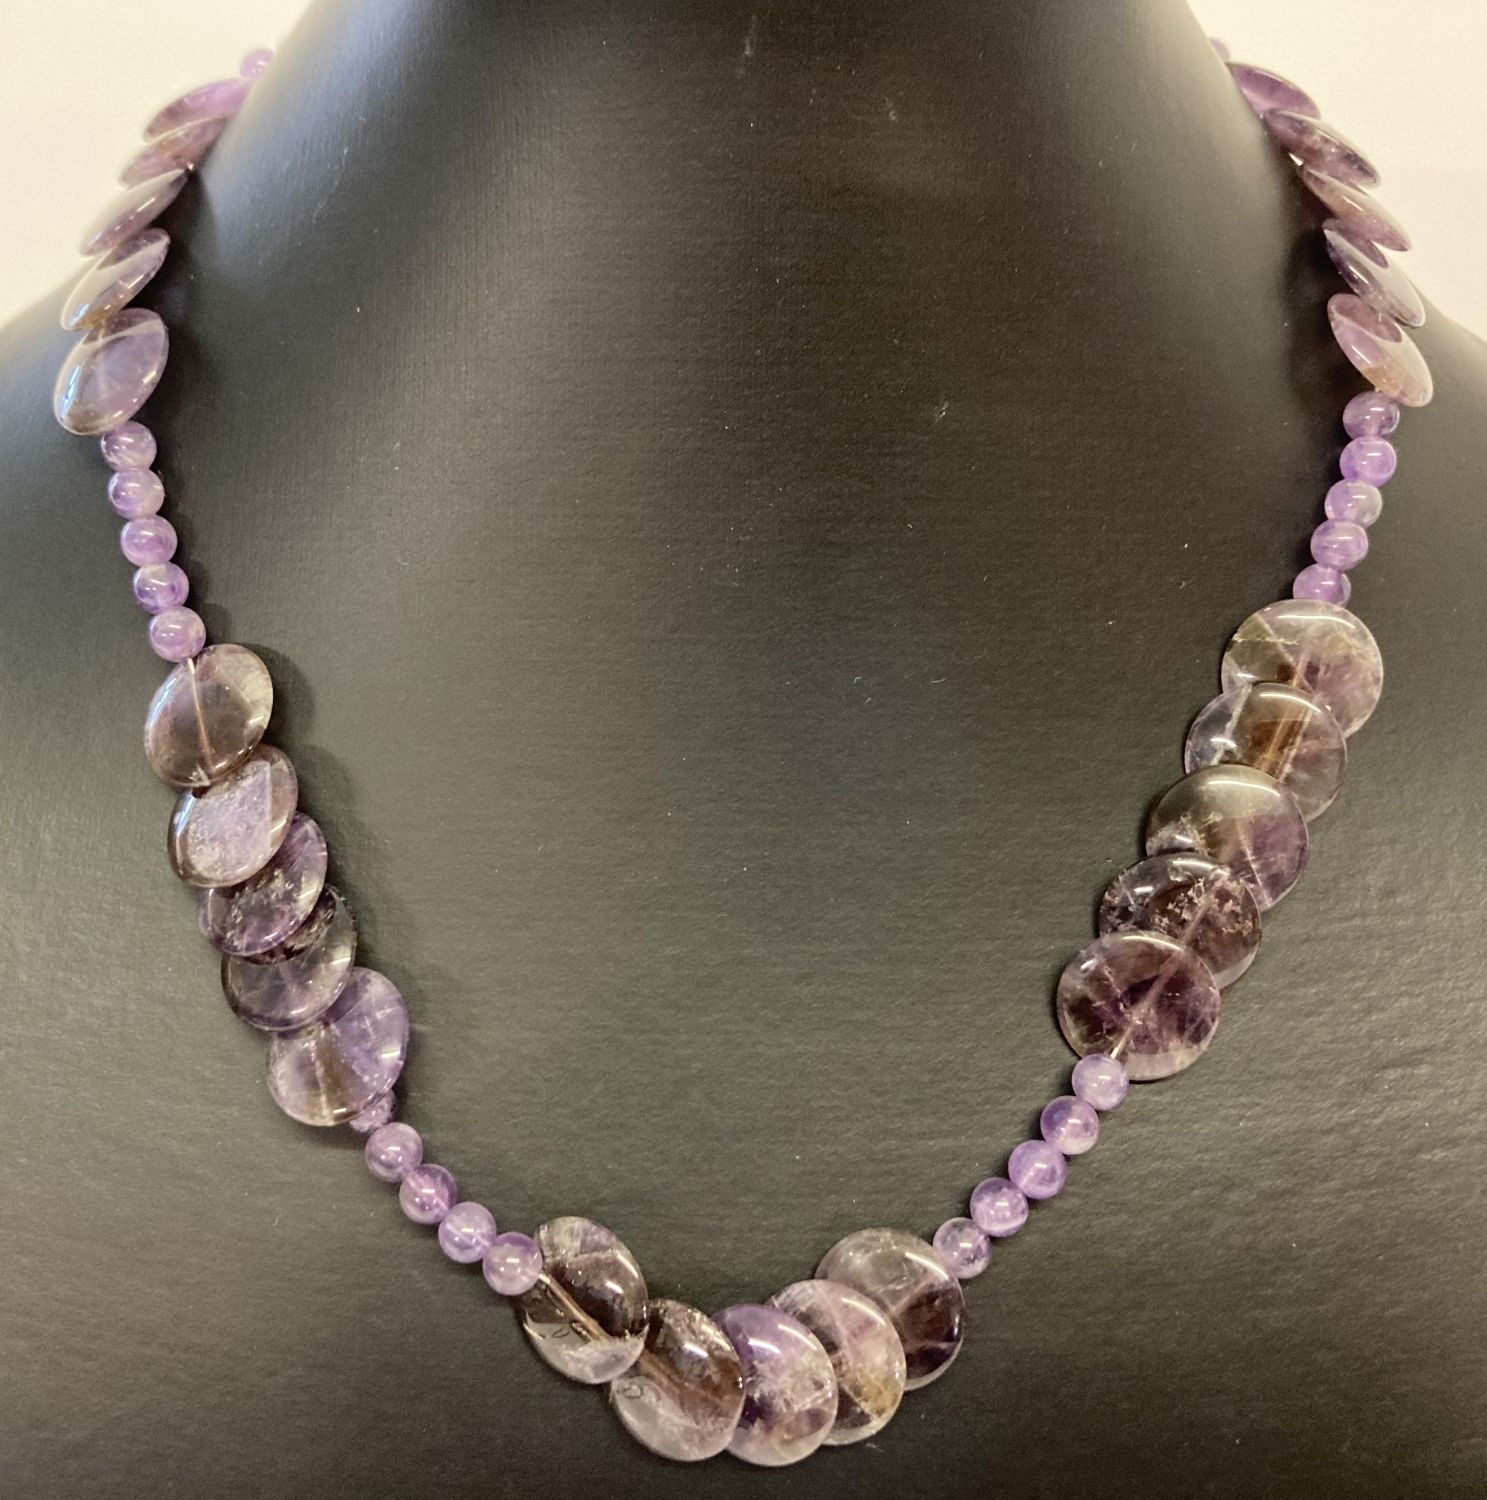 """A 17"""" amethyst beaded necklace with circular and spherical shaped beads & a white metal T bar clasp."""